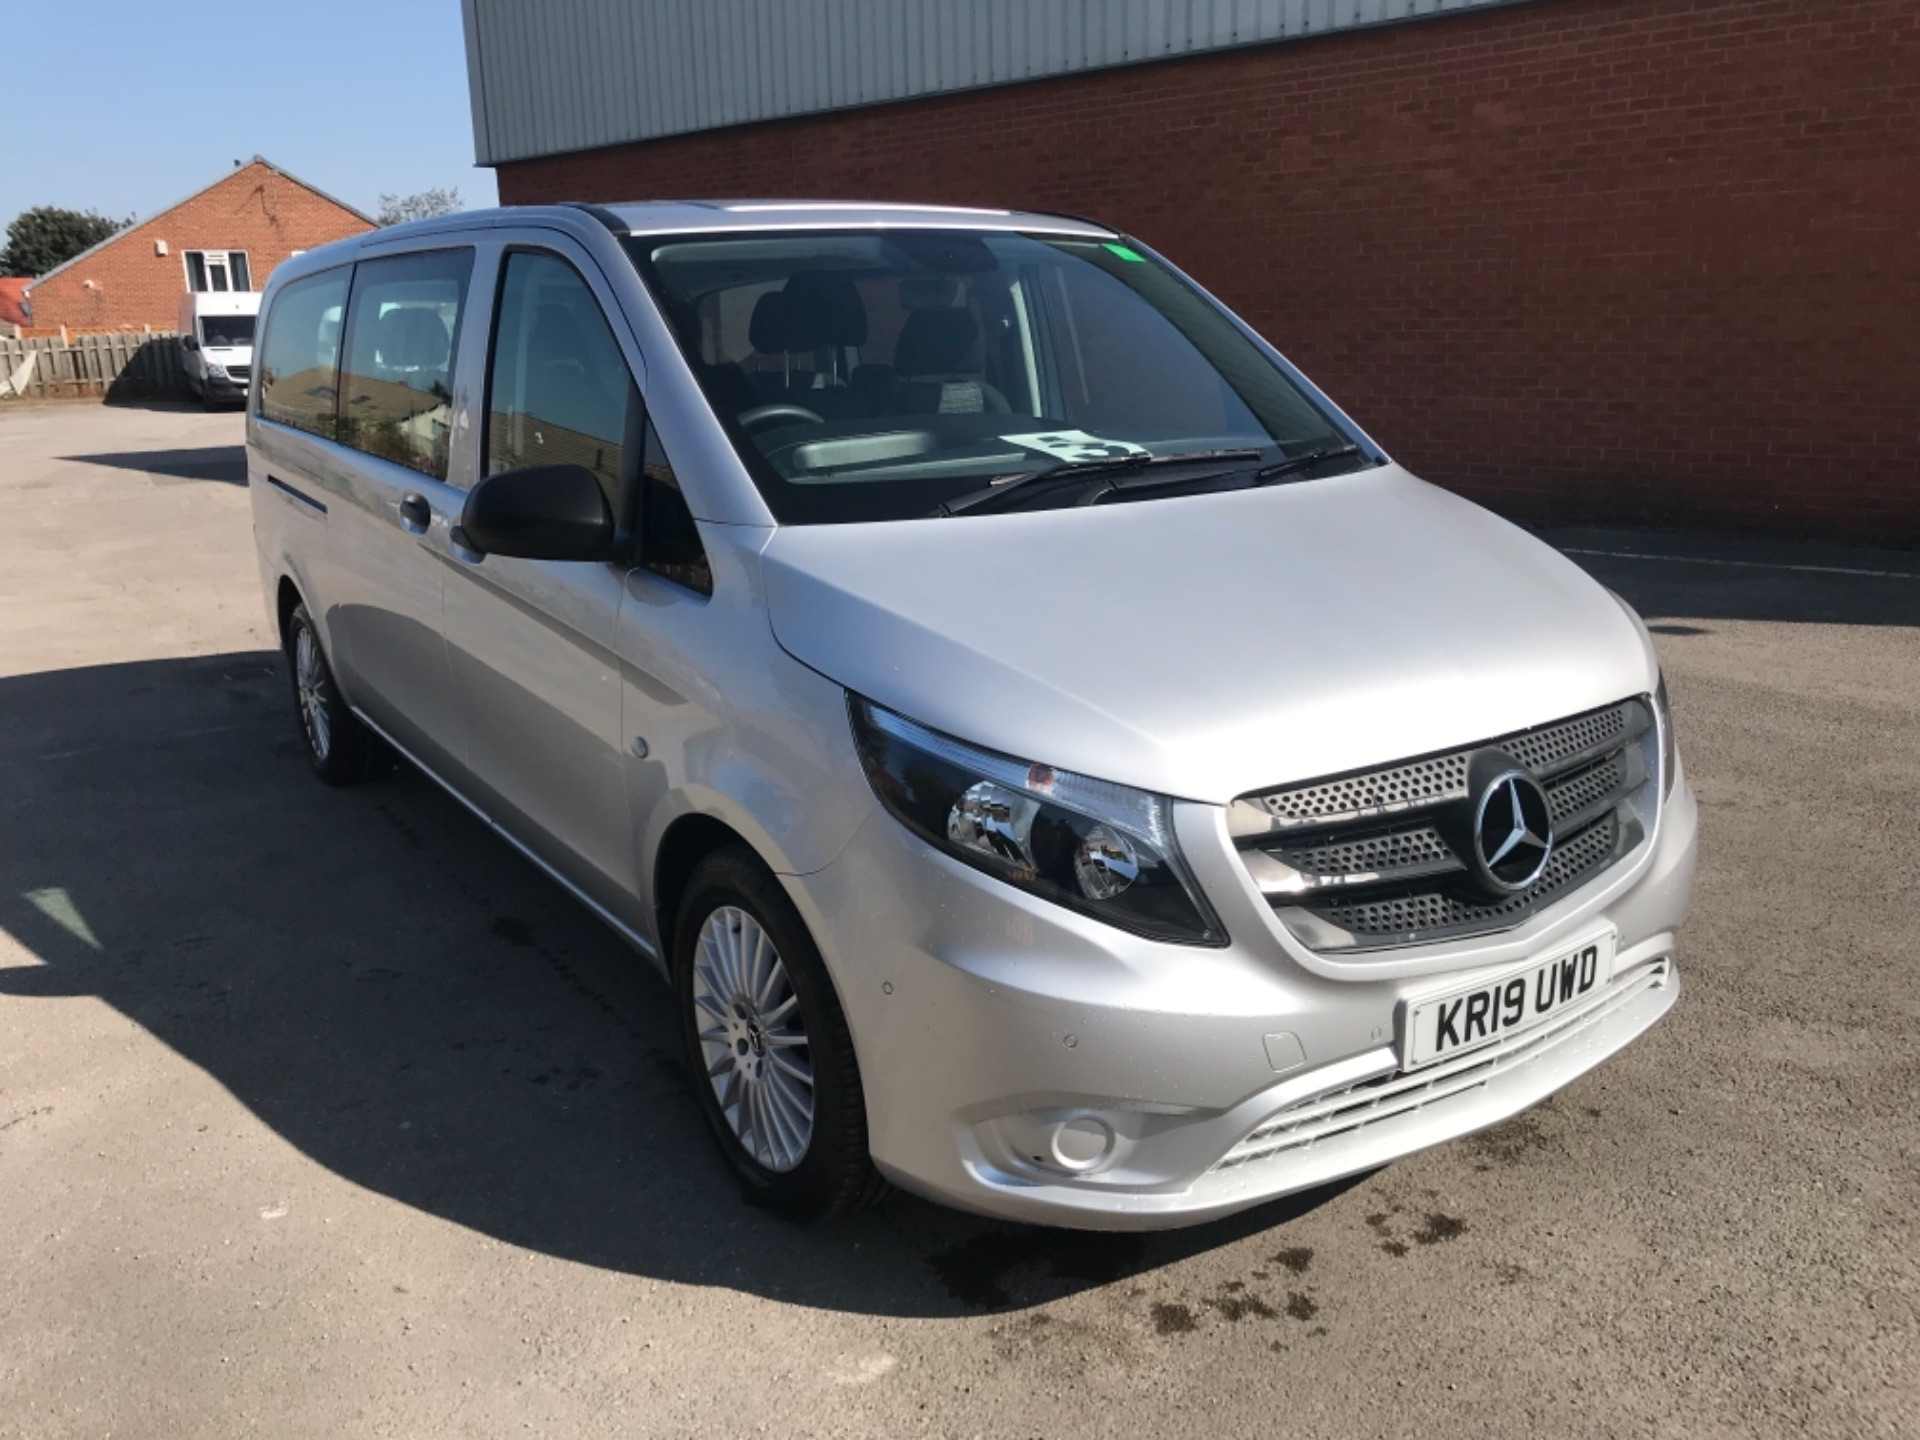 2019 Mercedes-Benz Vito 119 Cdi Select 8-Seater 7G-Tronic (KR19UWD) Image 1